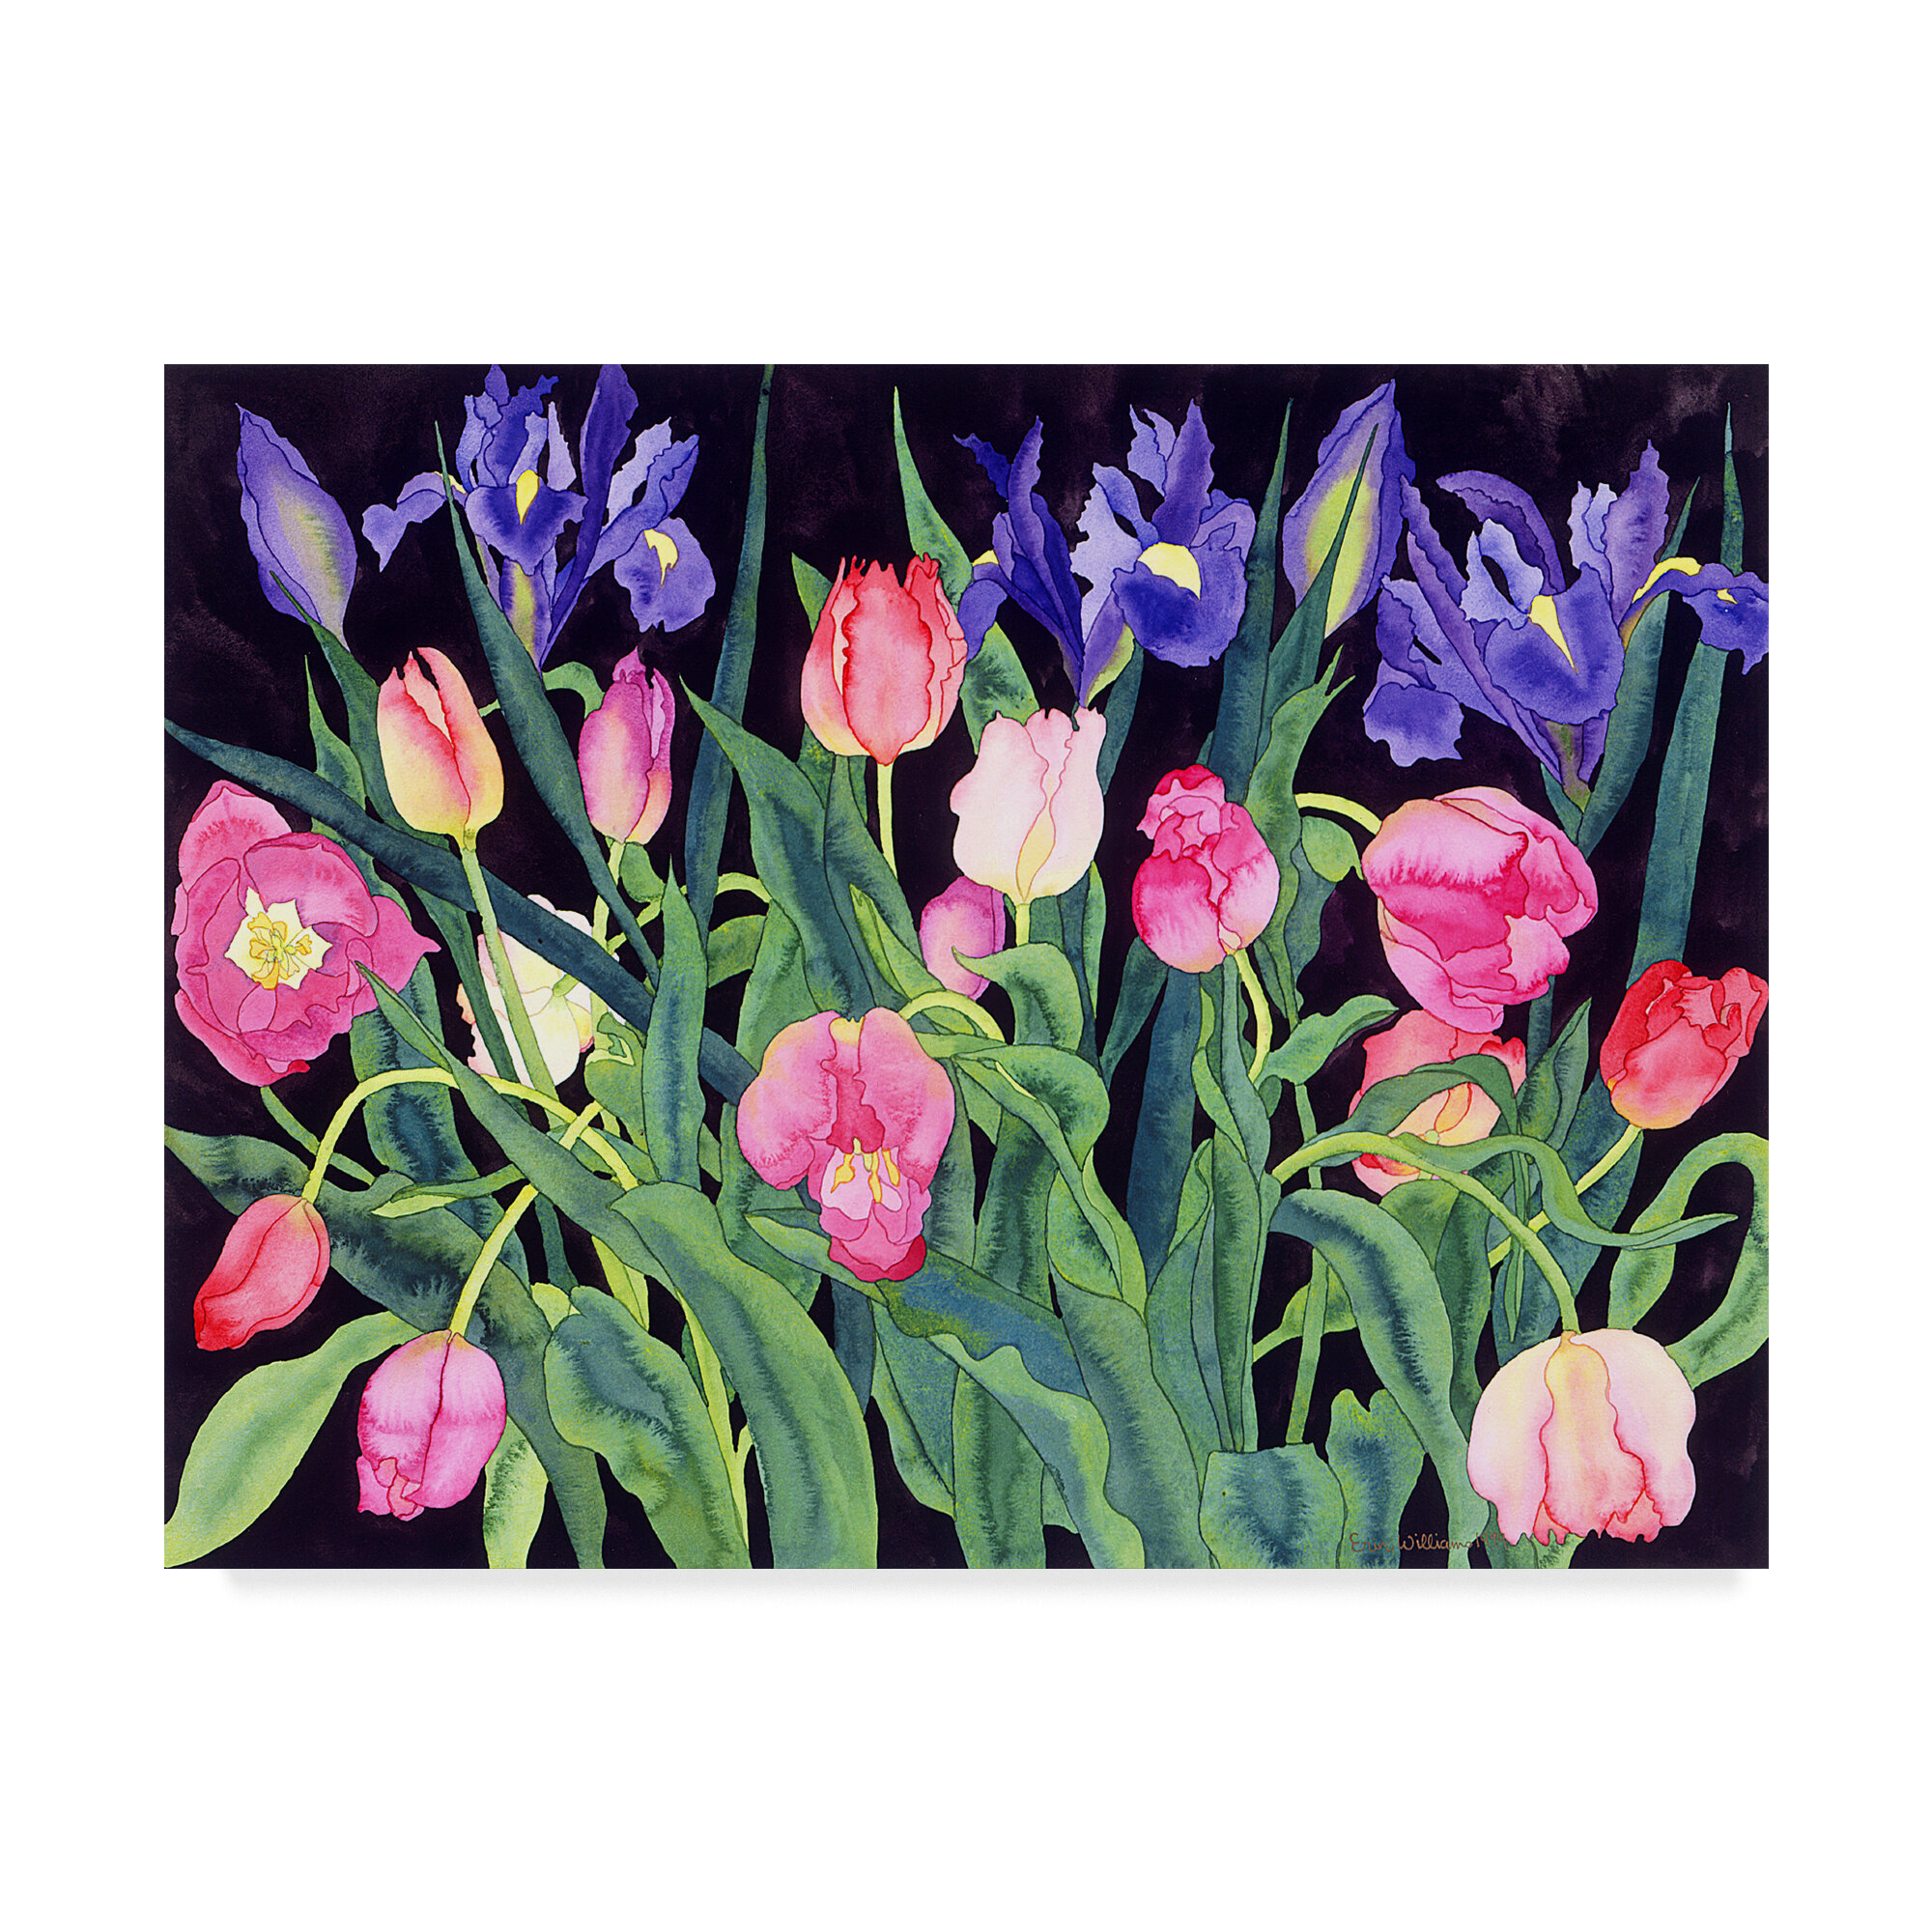 Trademark Art Tulips And Irises Oil Painting Print On Wrapped Canvas Wayfair